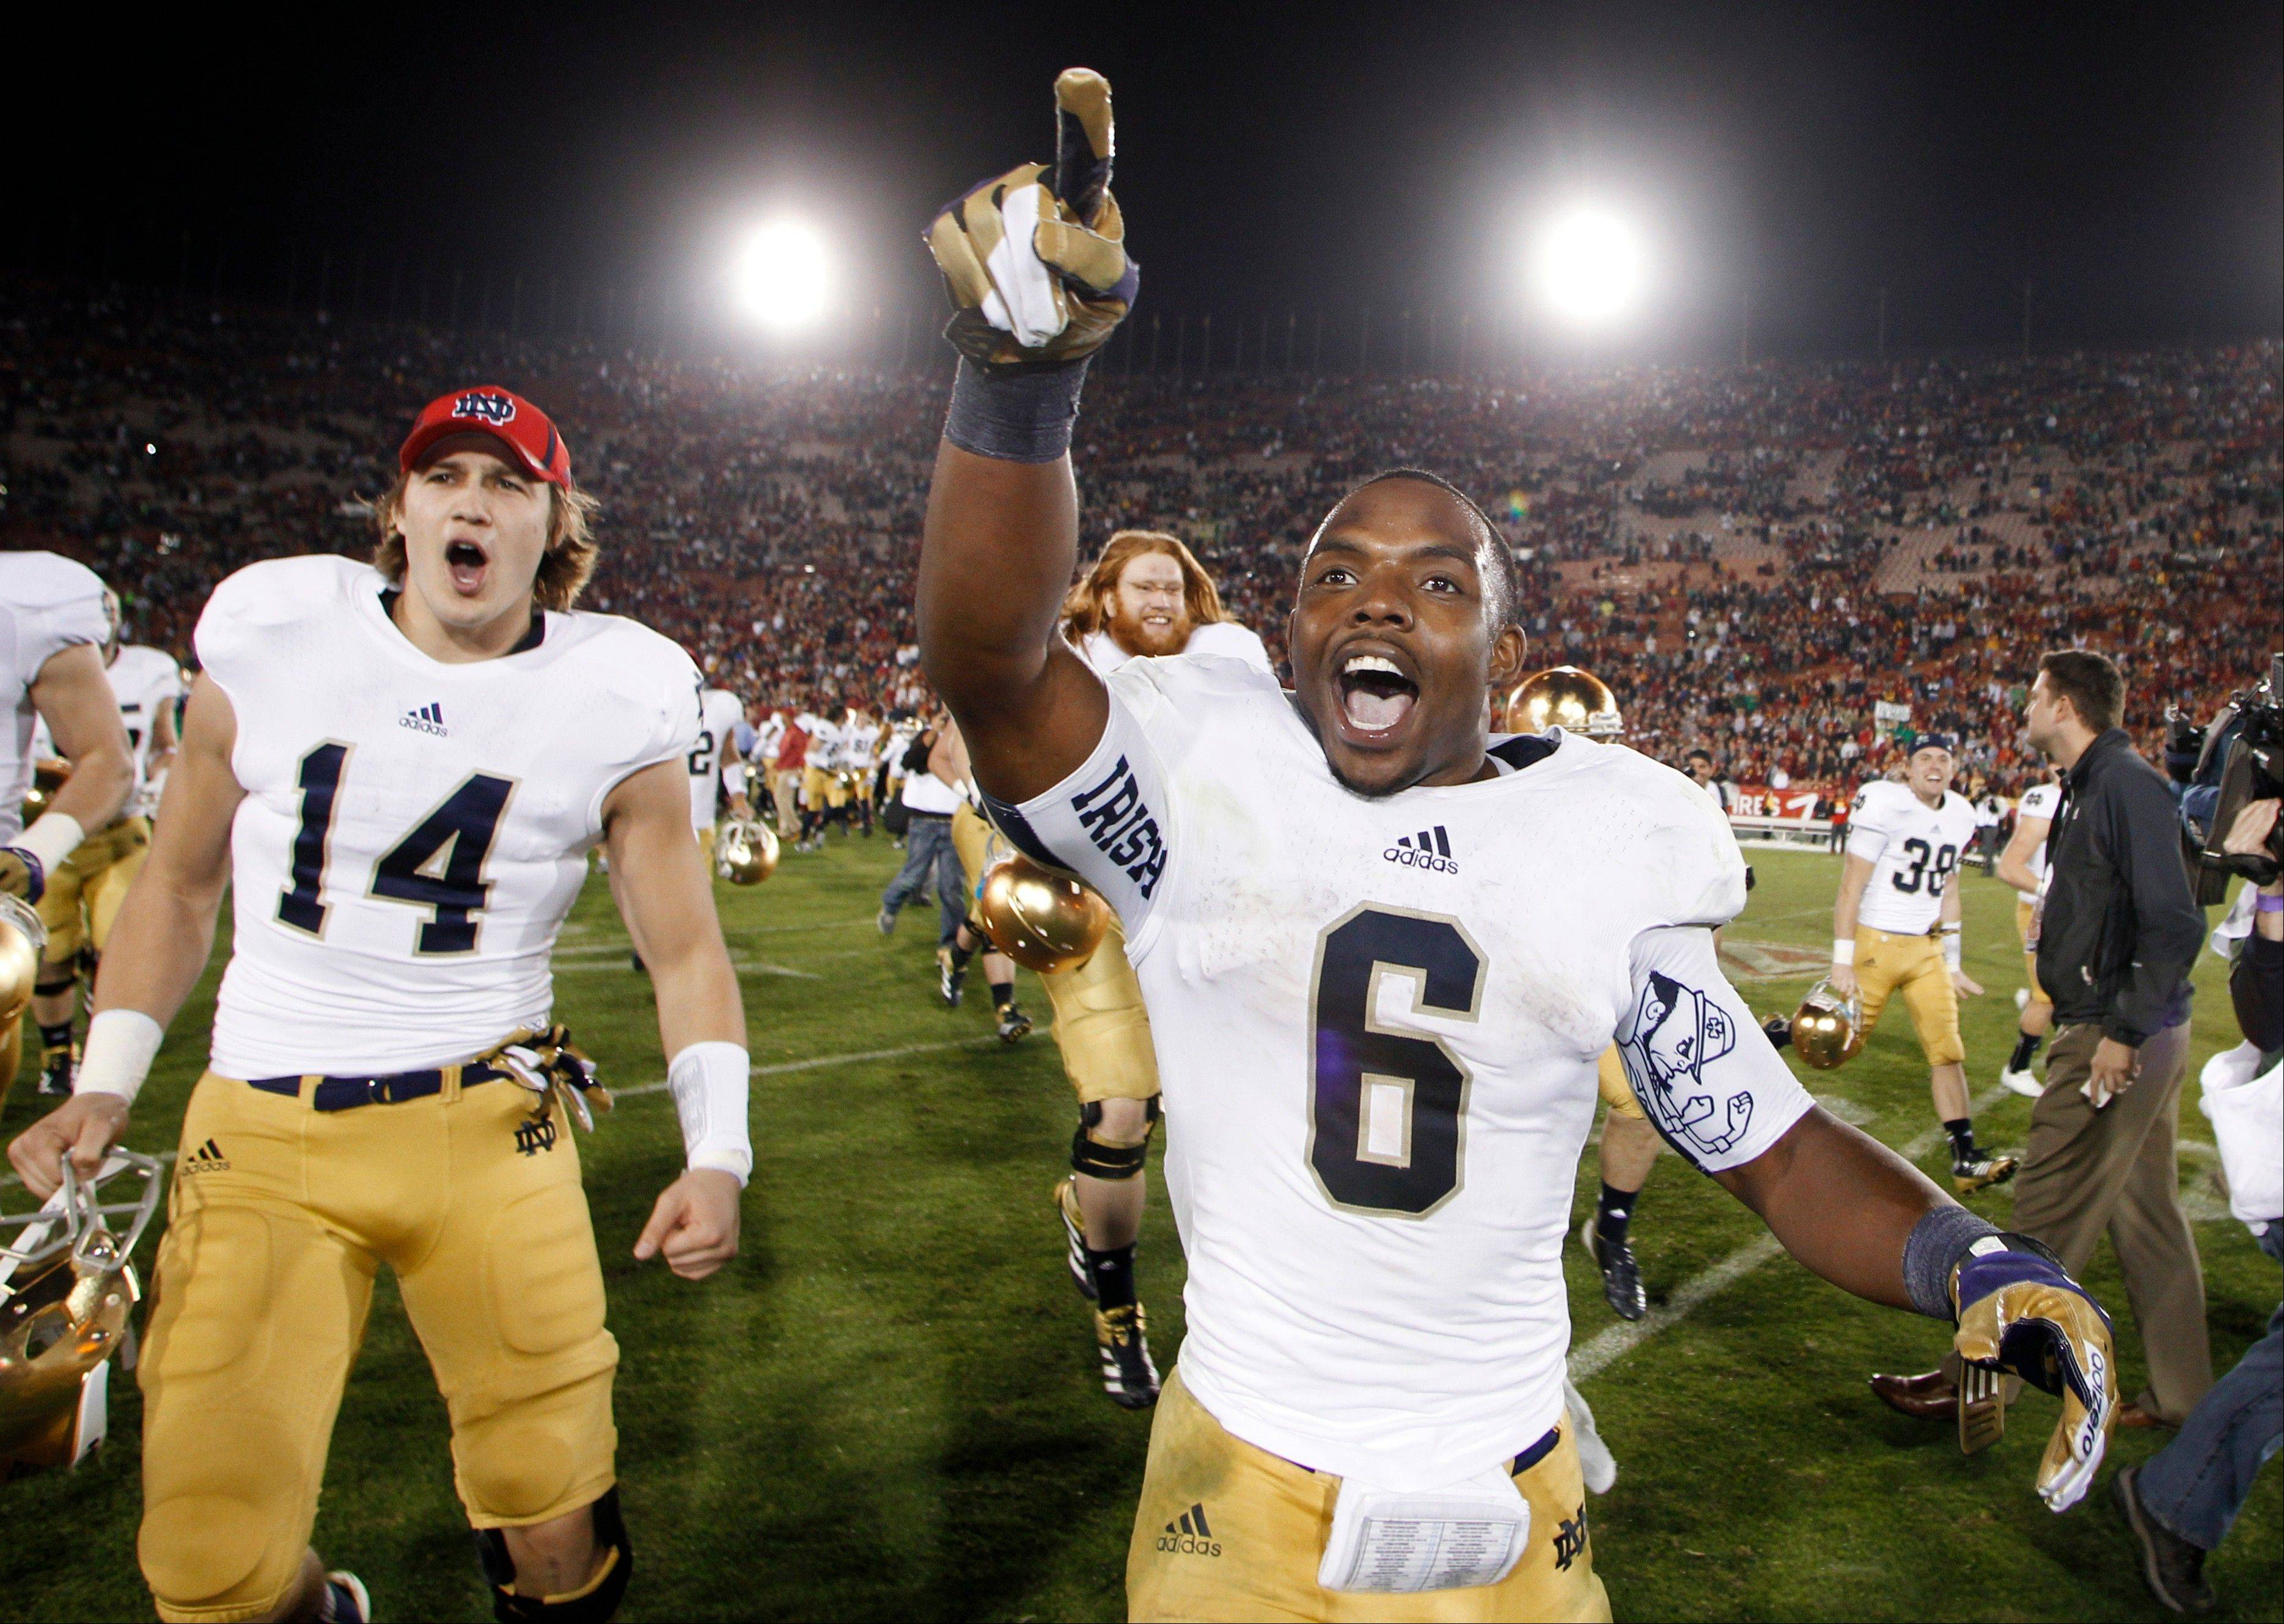 Notre Dame was unranked at the start of the college football season in The AP Top 25 poll, but the Fighting Irish, as running back Theo Riddick, right, and wide receiver Luke Massa point out, finished the regular season ranked No. 1.